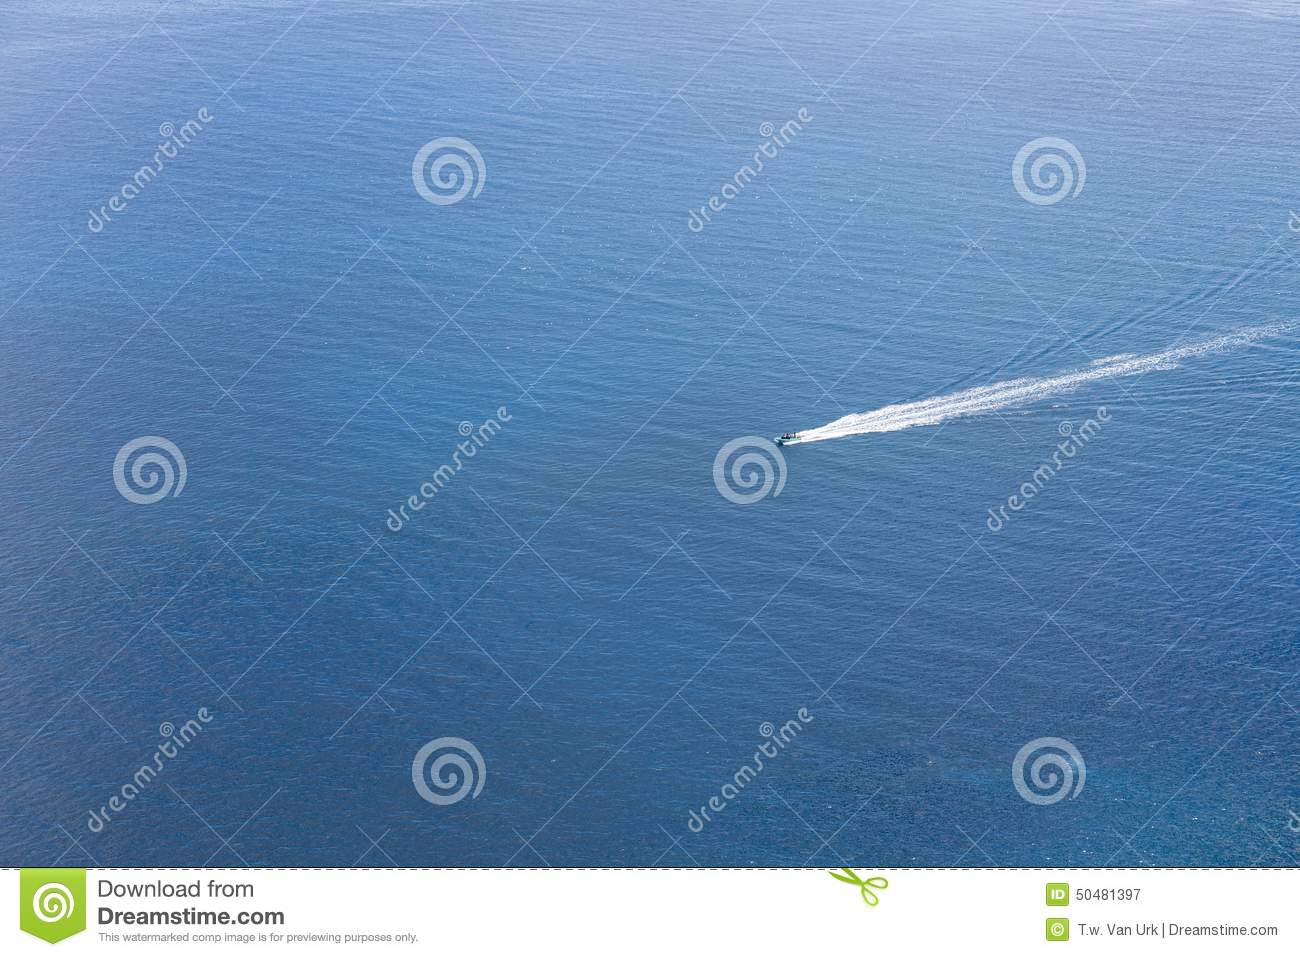 Aerial view of a small ship navigating at a blue ocean